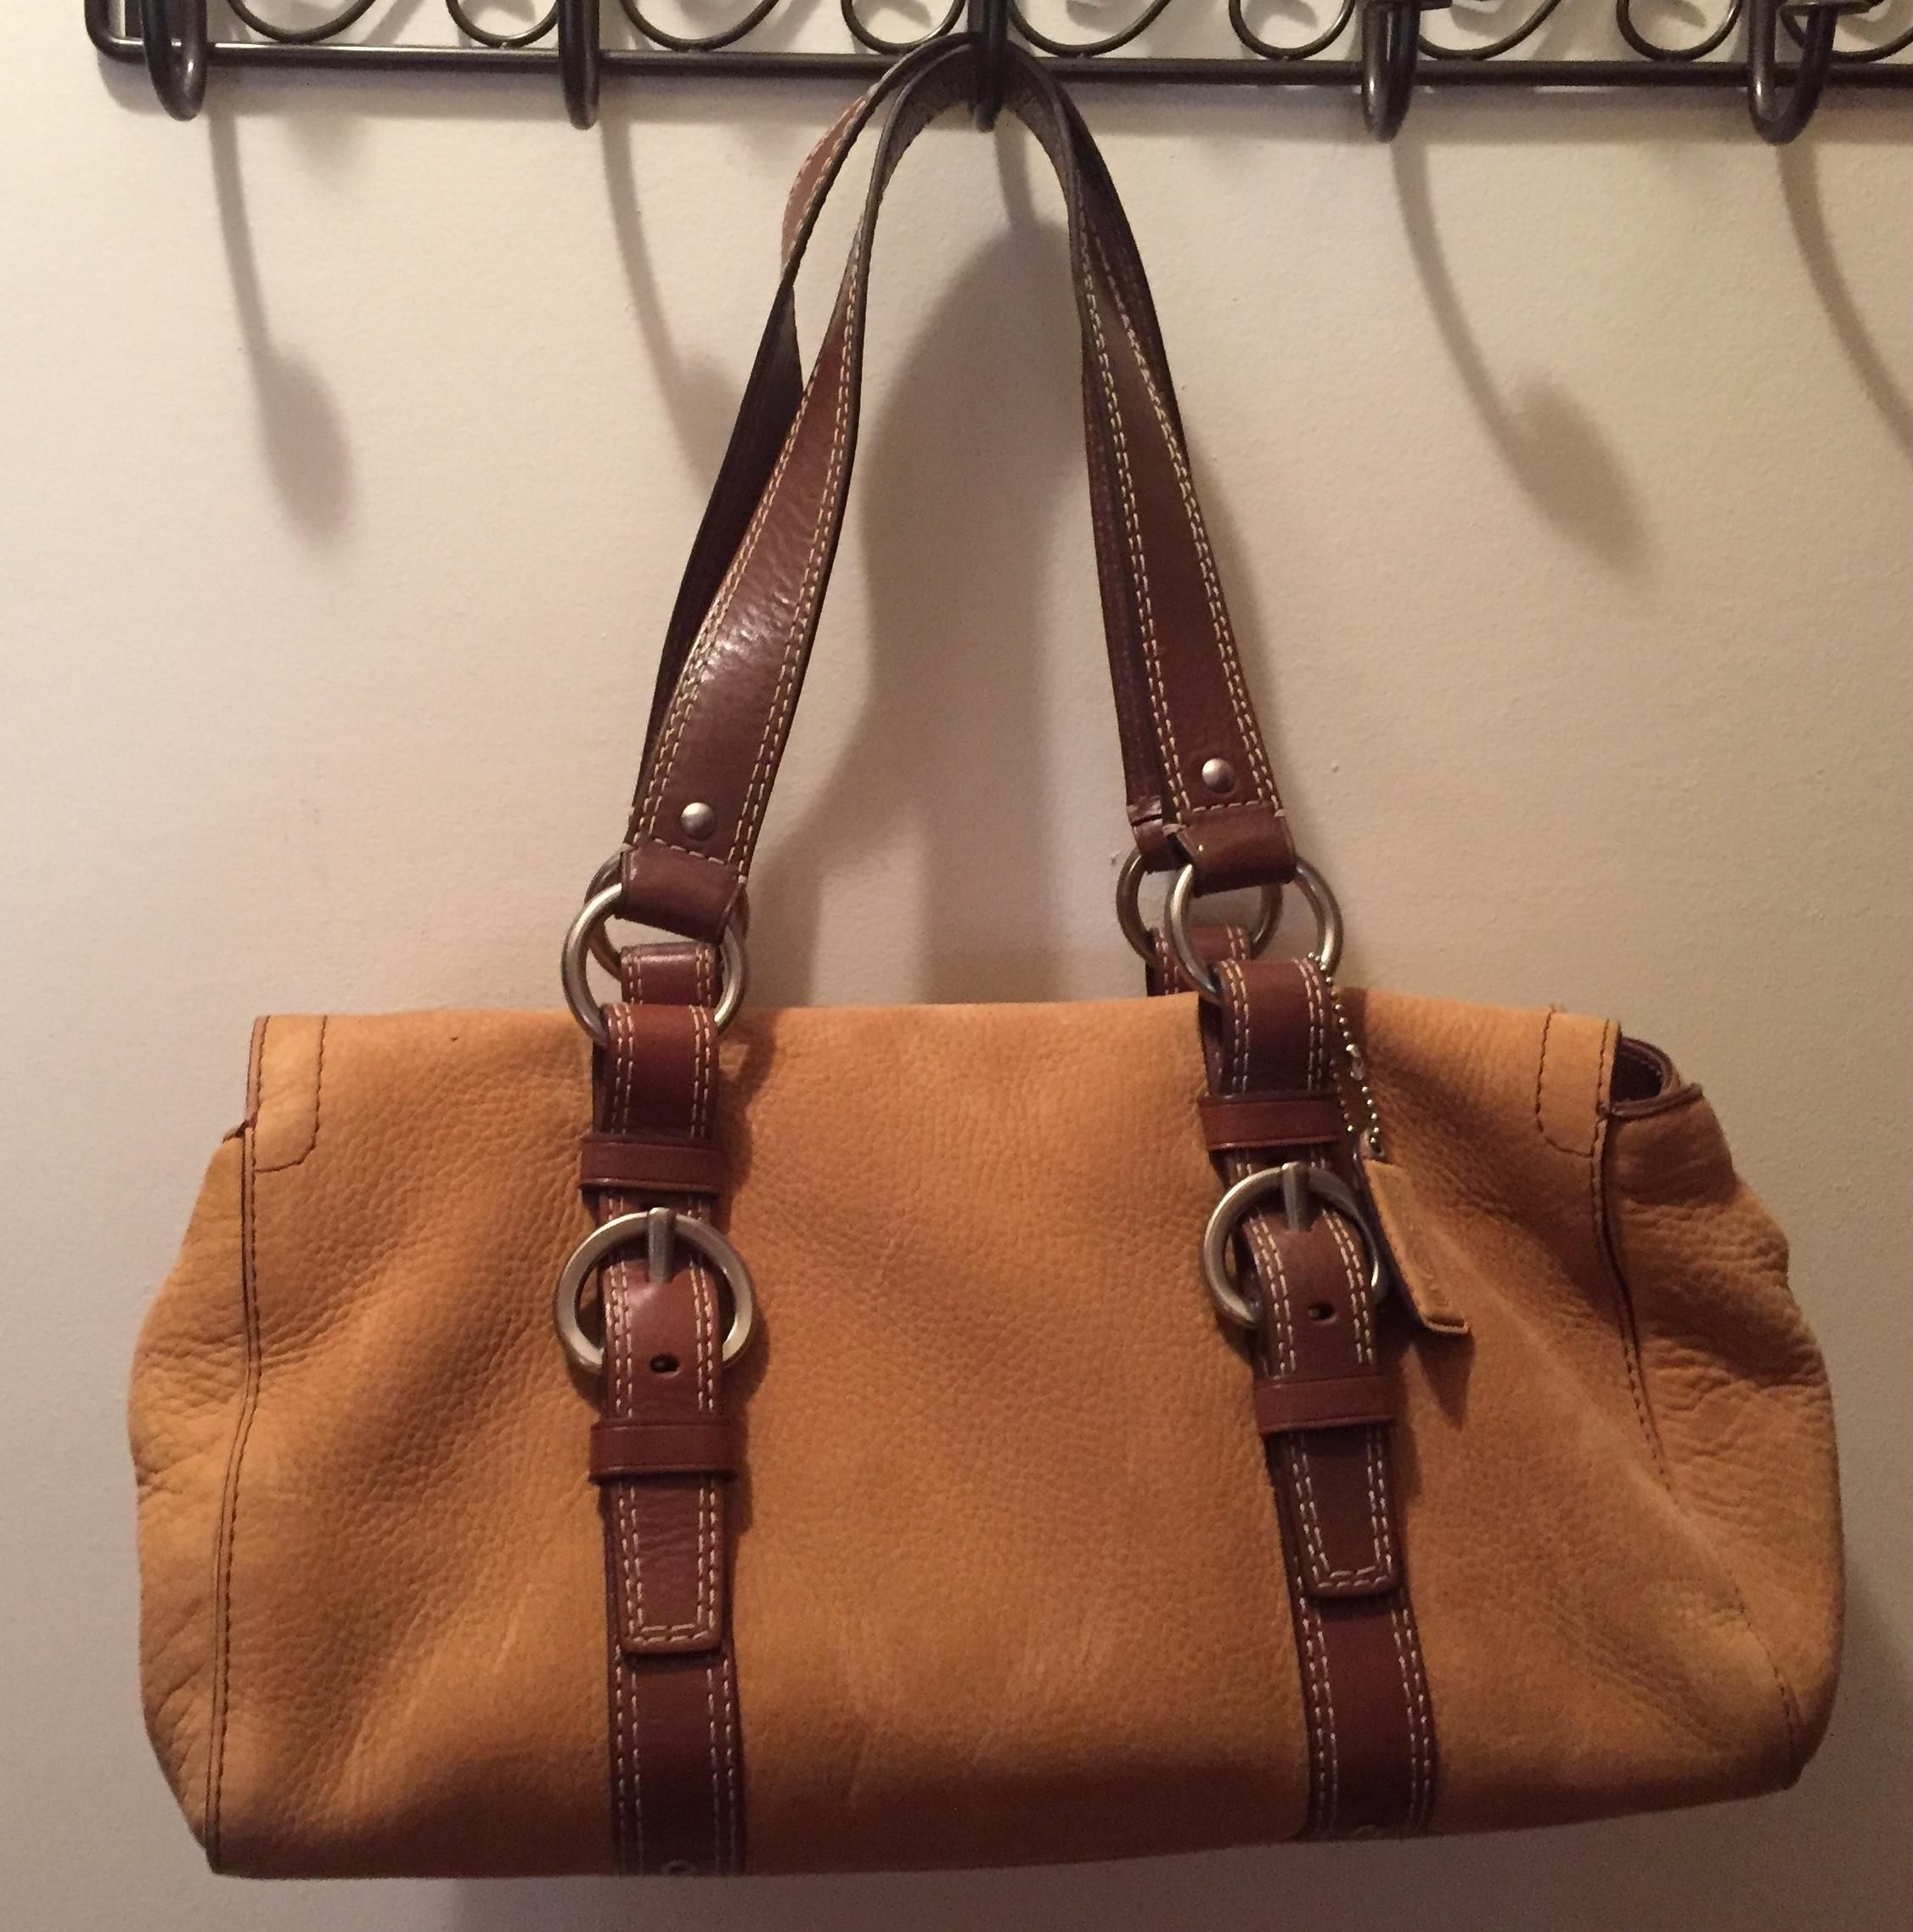 9bb956e9ad Coach F10895 Camel Satchel. Save 72% on the Coach F10895 Camel Satchel!  This satchel is a top 10 member favorite on Tradesy. See how much you can  save